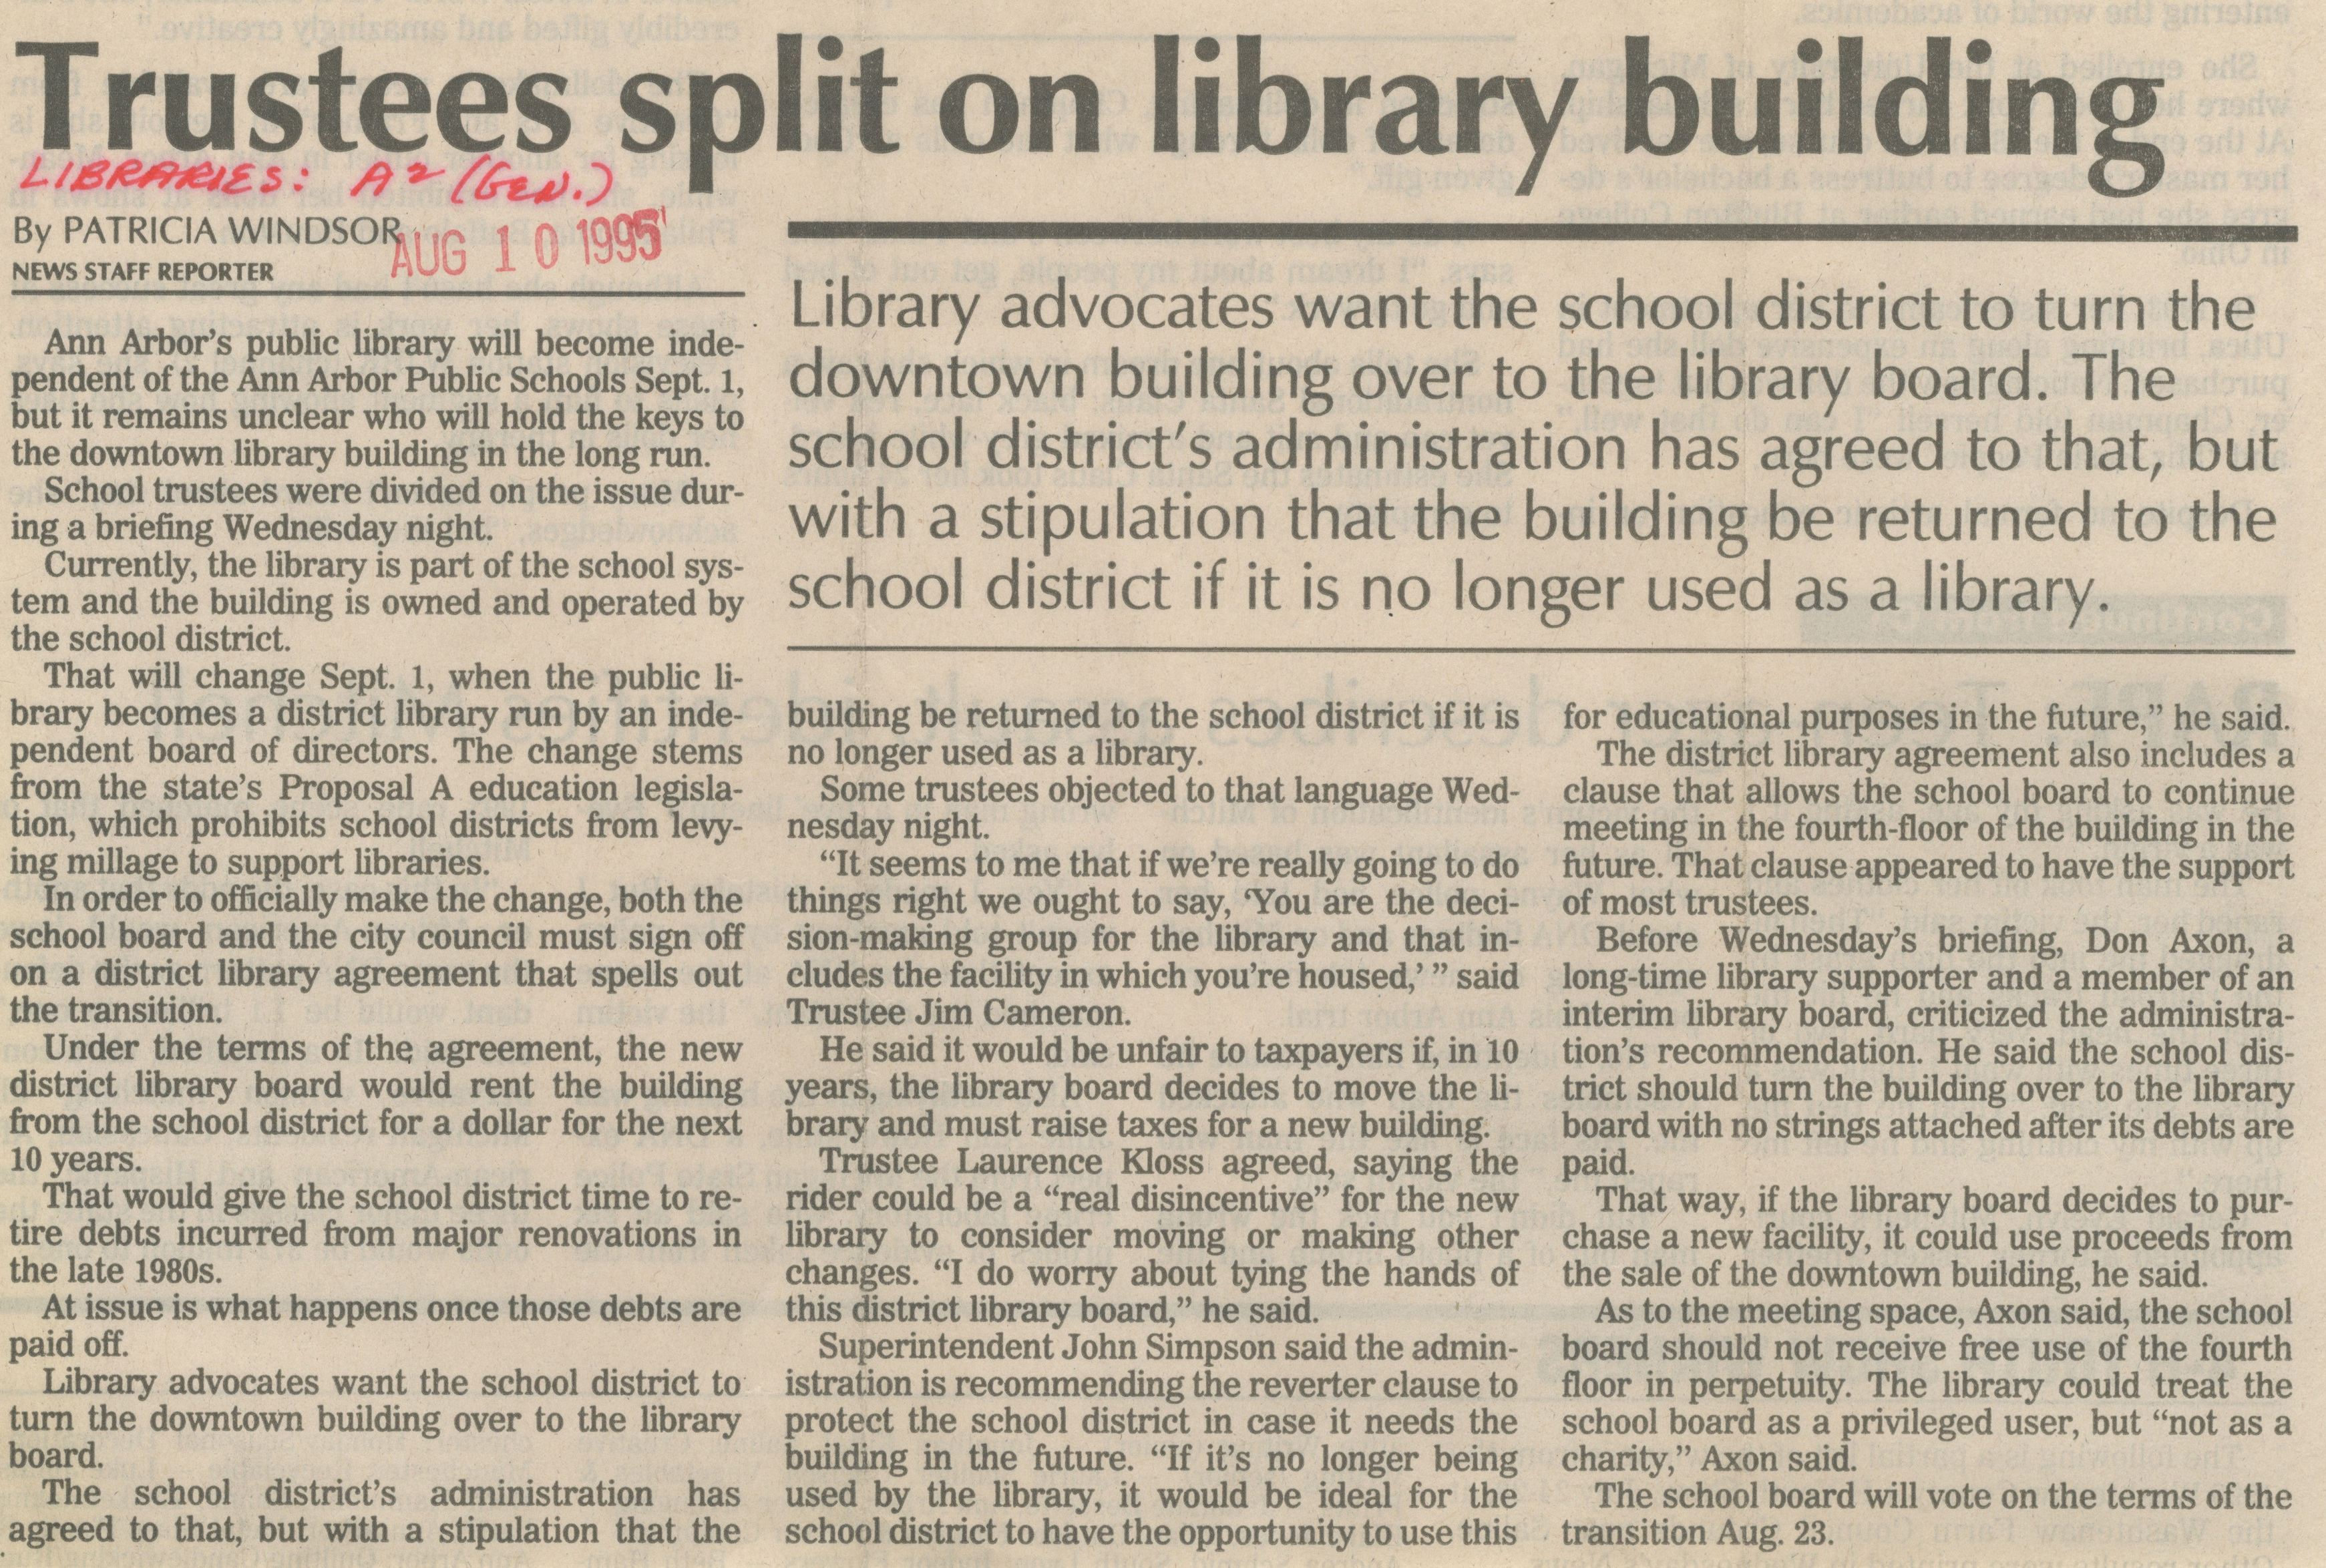 Trustees Split On Library Building image